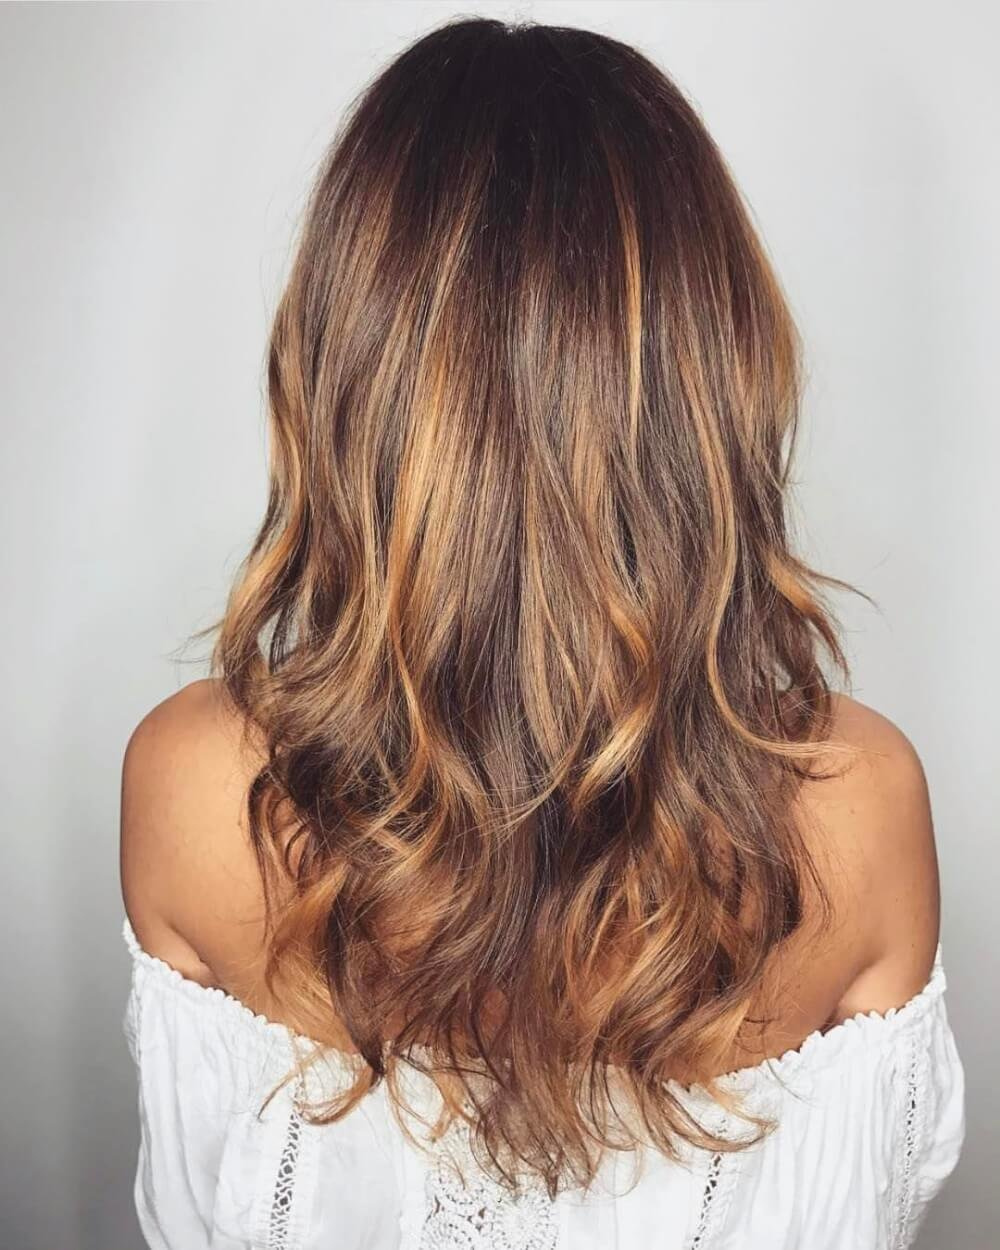 New 34 Light Brown Hair Colors That Will Take Your Breath Away Ideas With Pictures